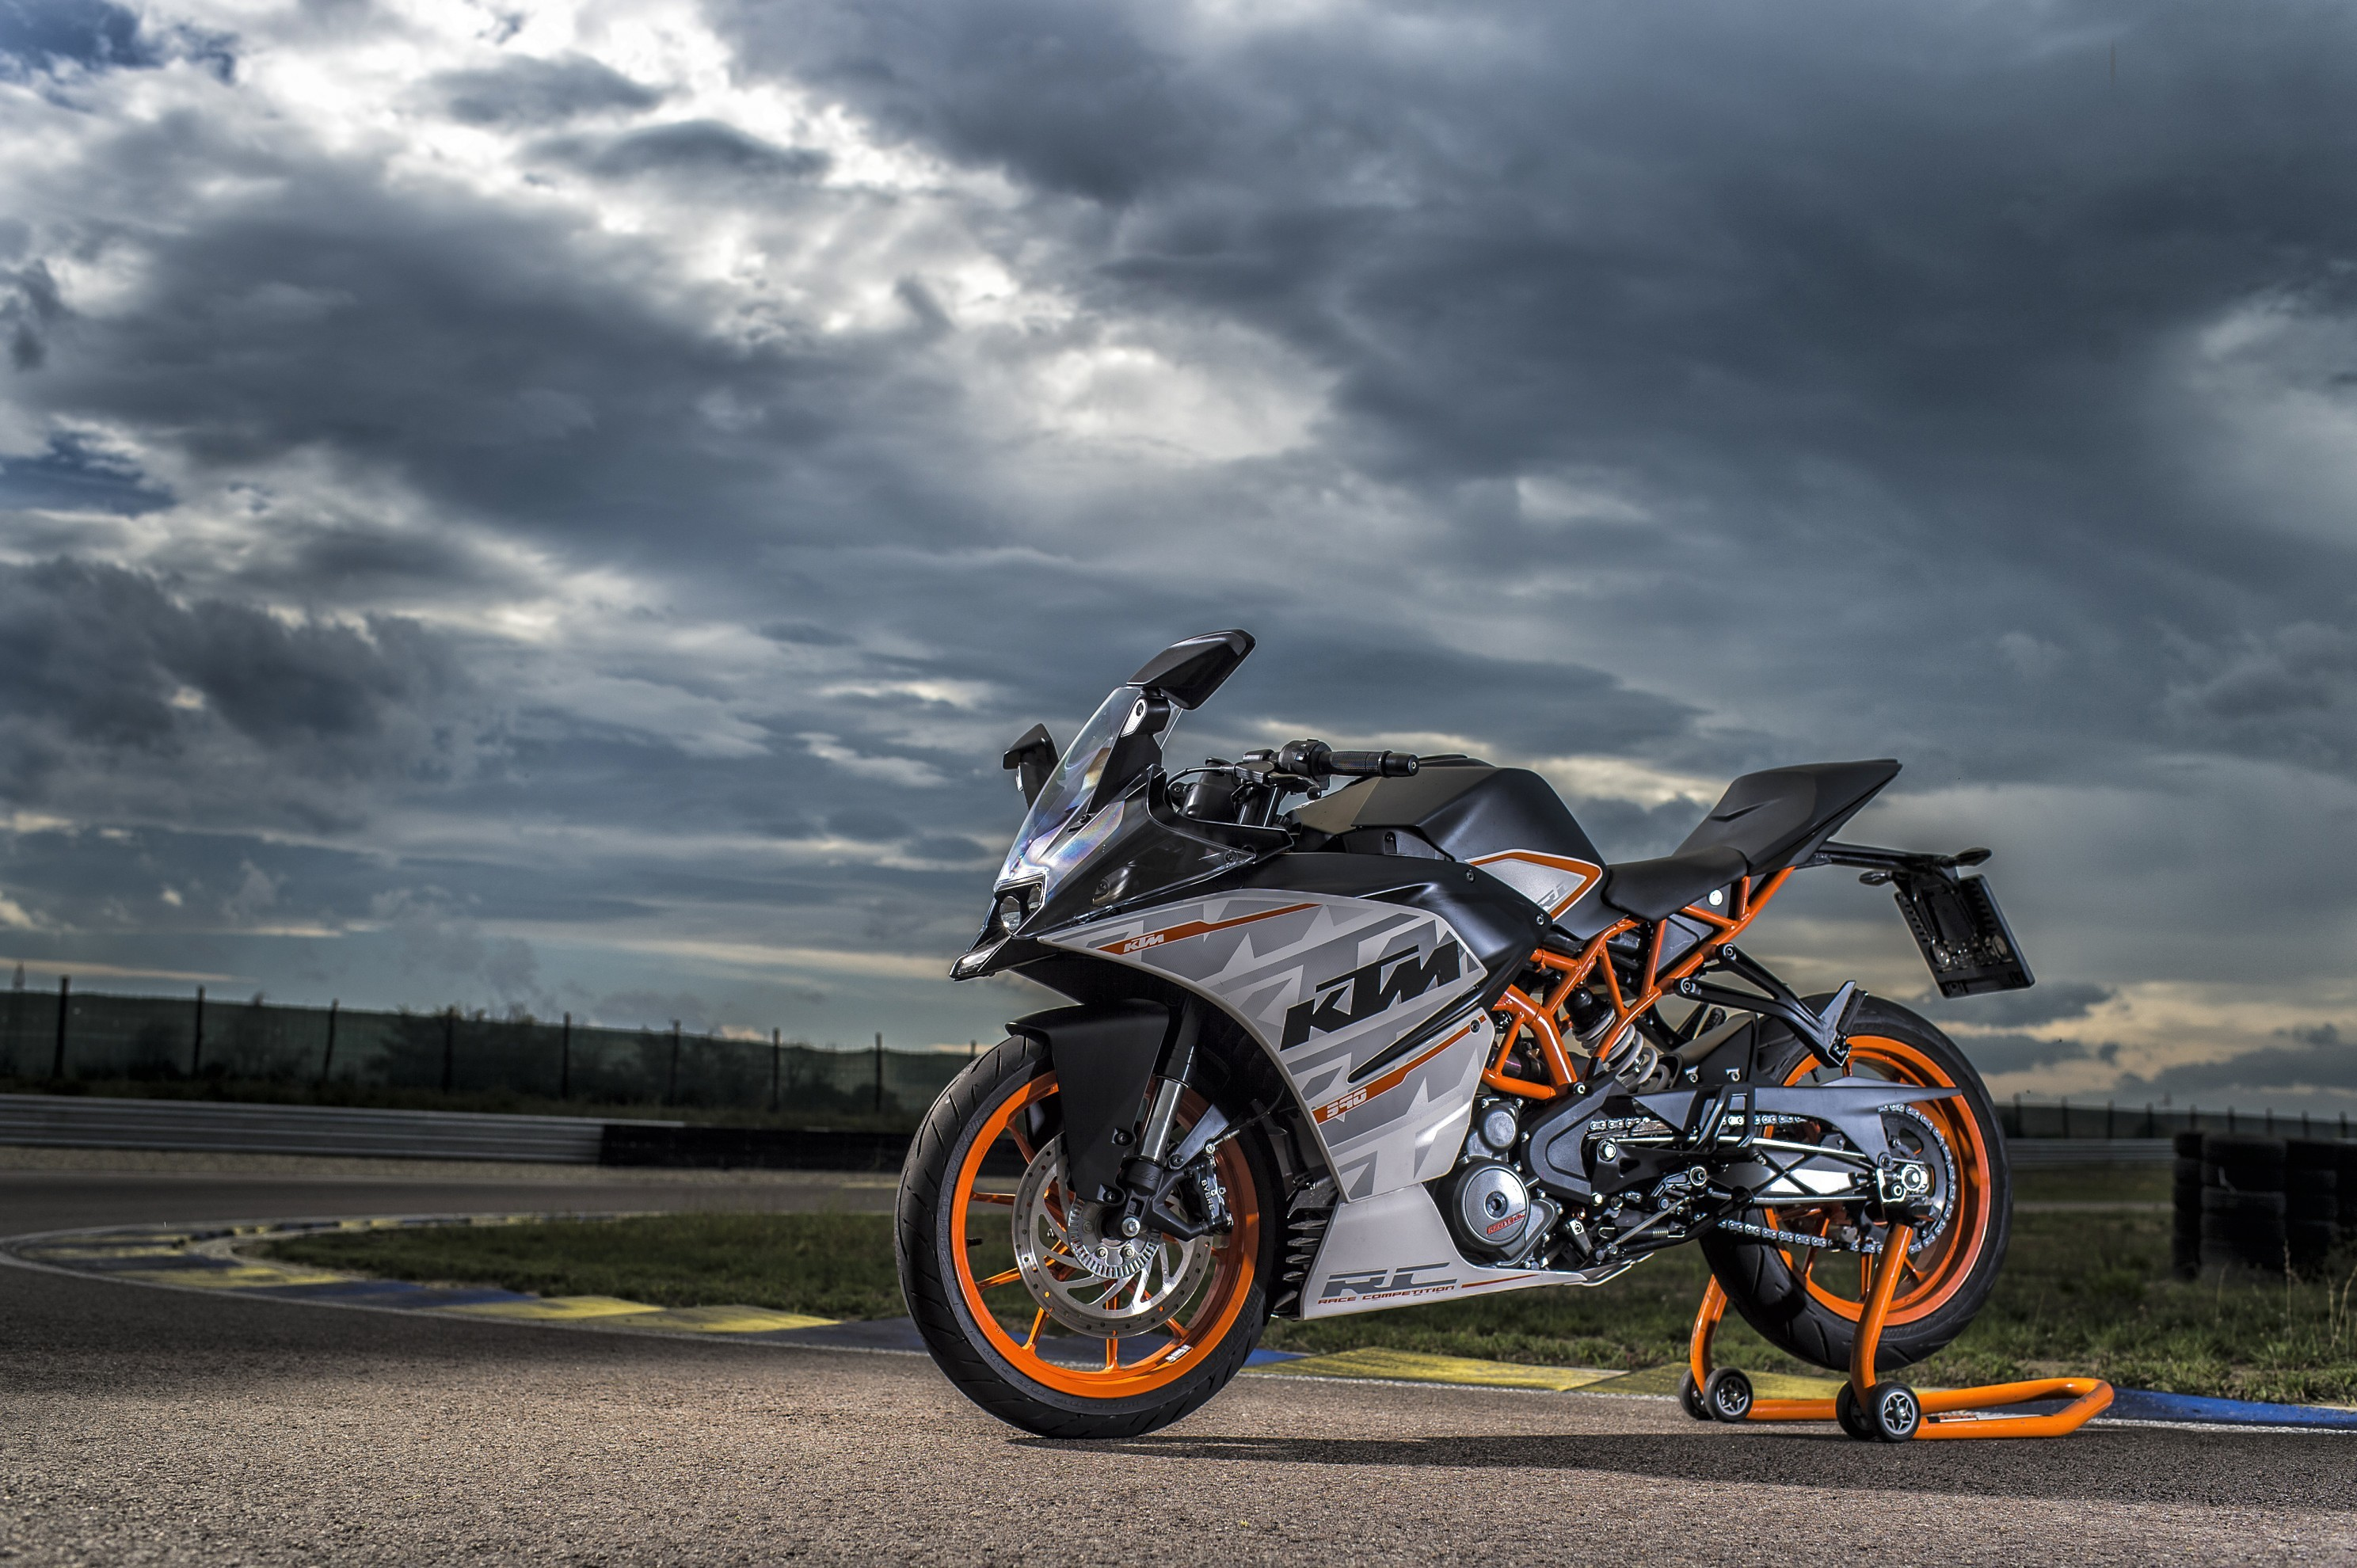 43 Wallpaper Of Ktm Rc 390 Background Total Update Get ktm rc wallpaper for pc pics